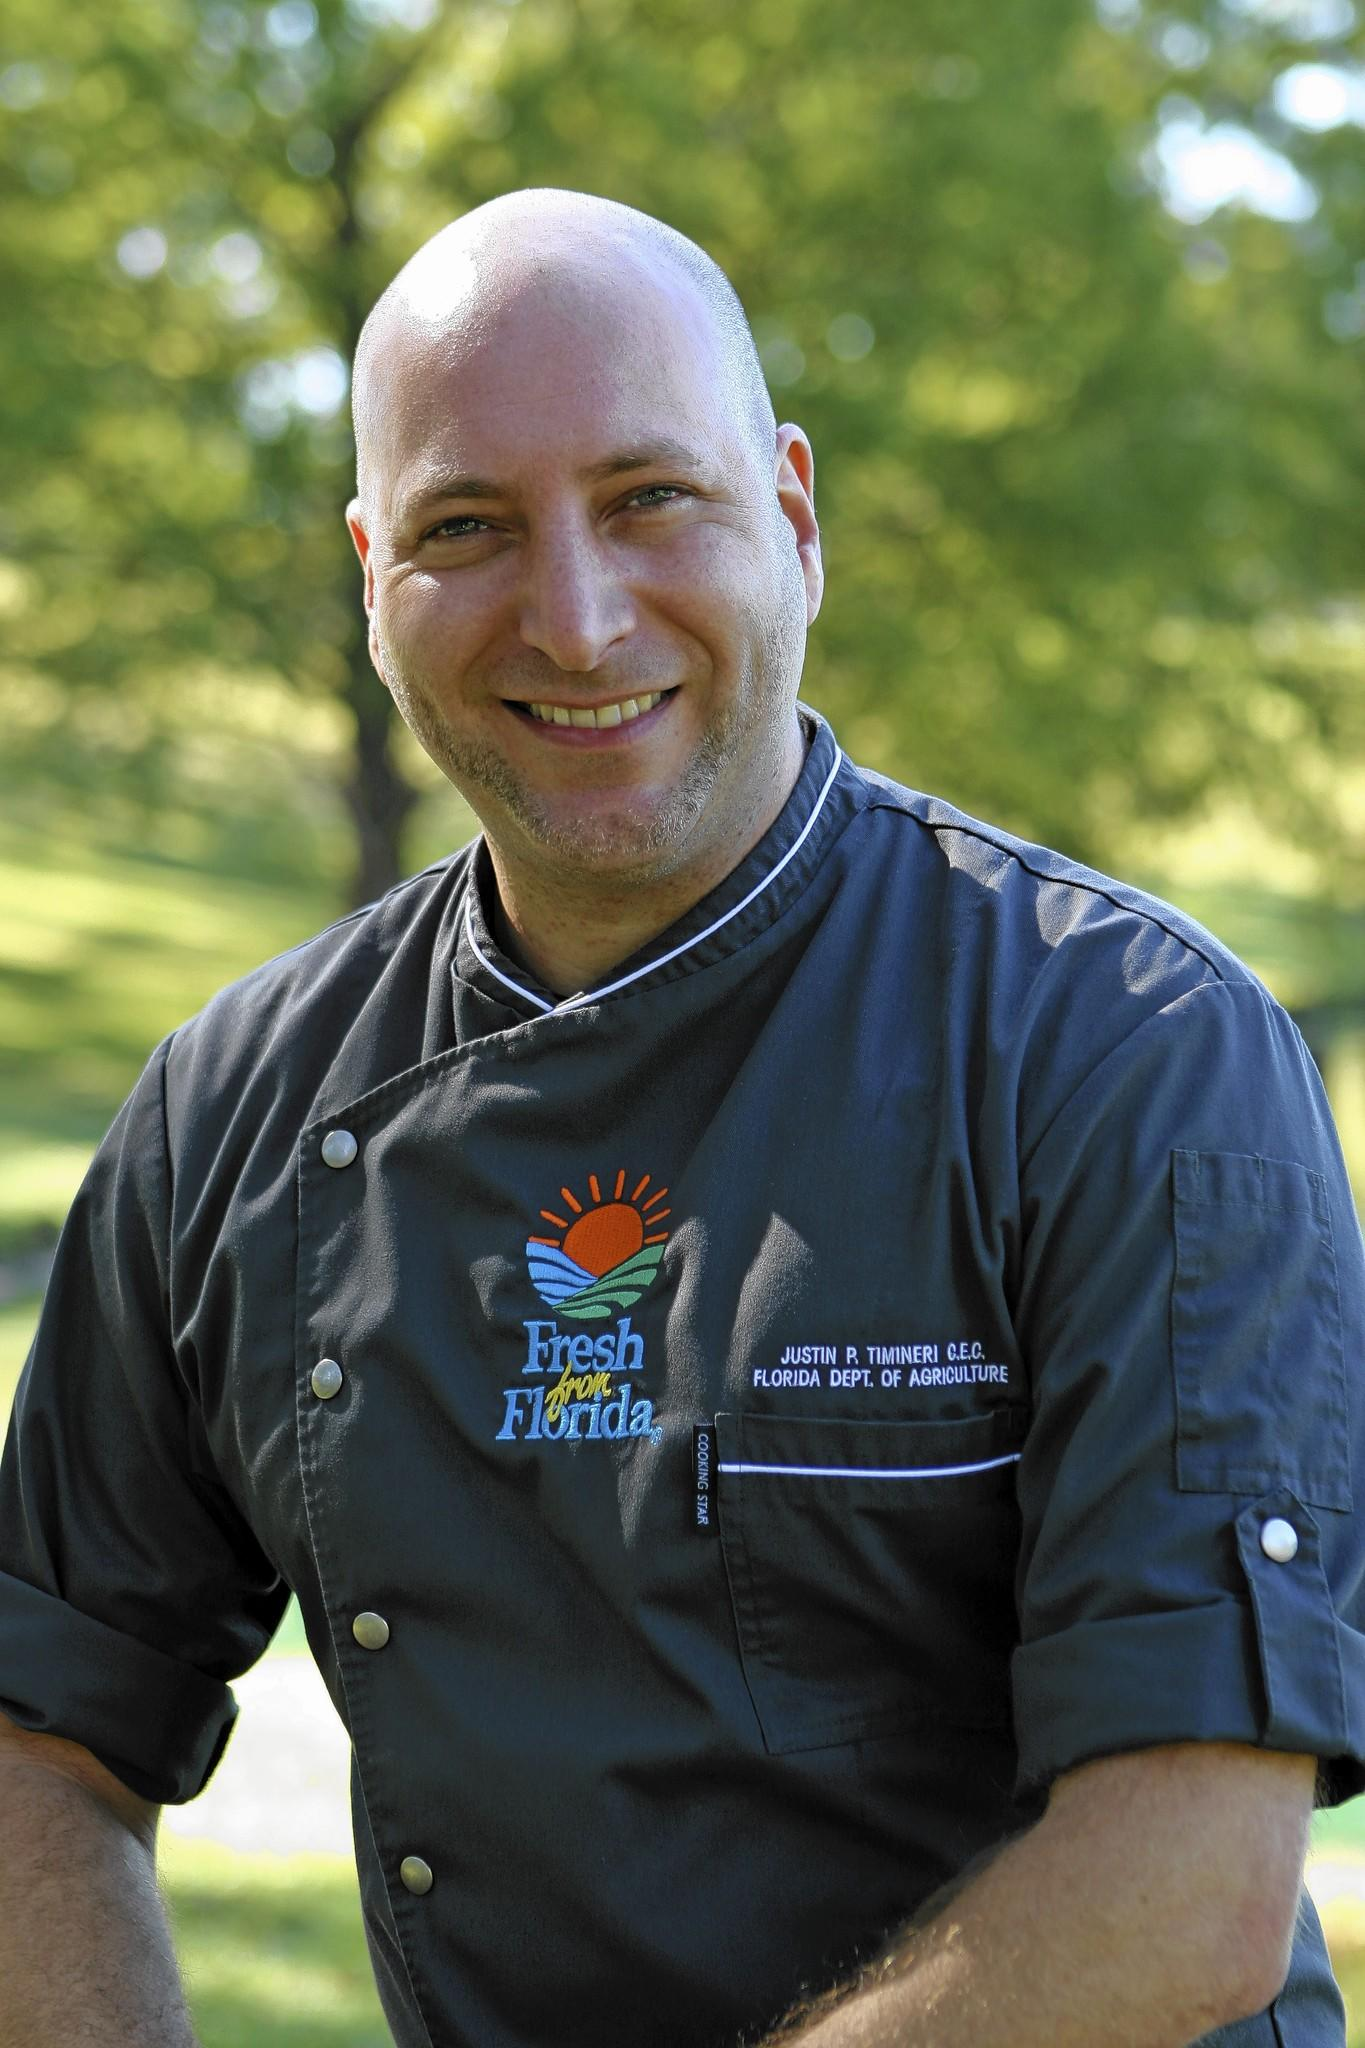 Justin Timineri is an executive chef and Florida's culinary ambassador.